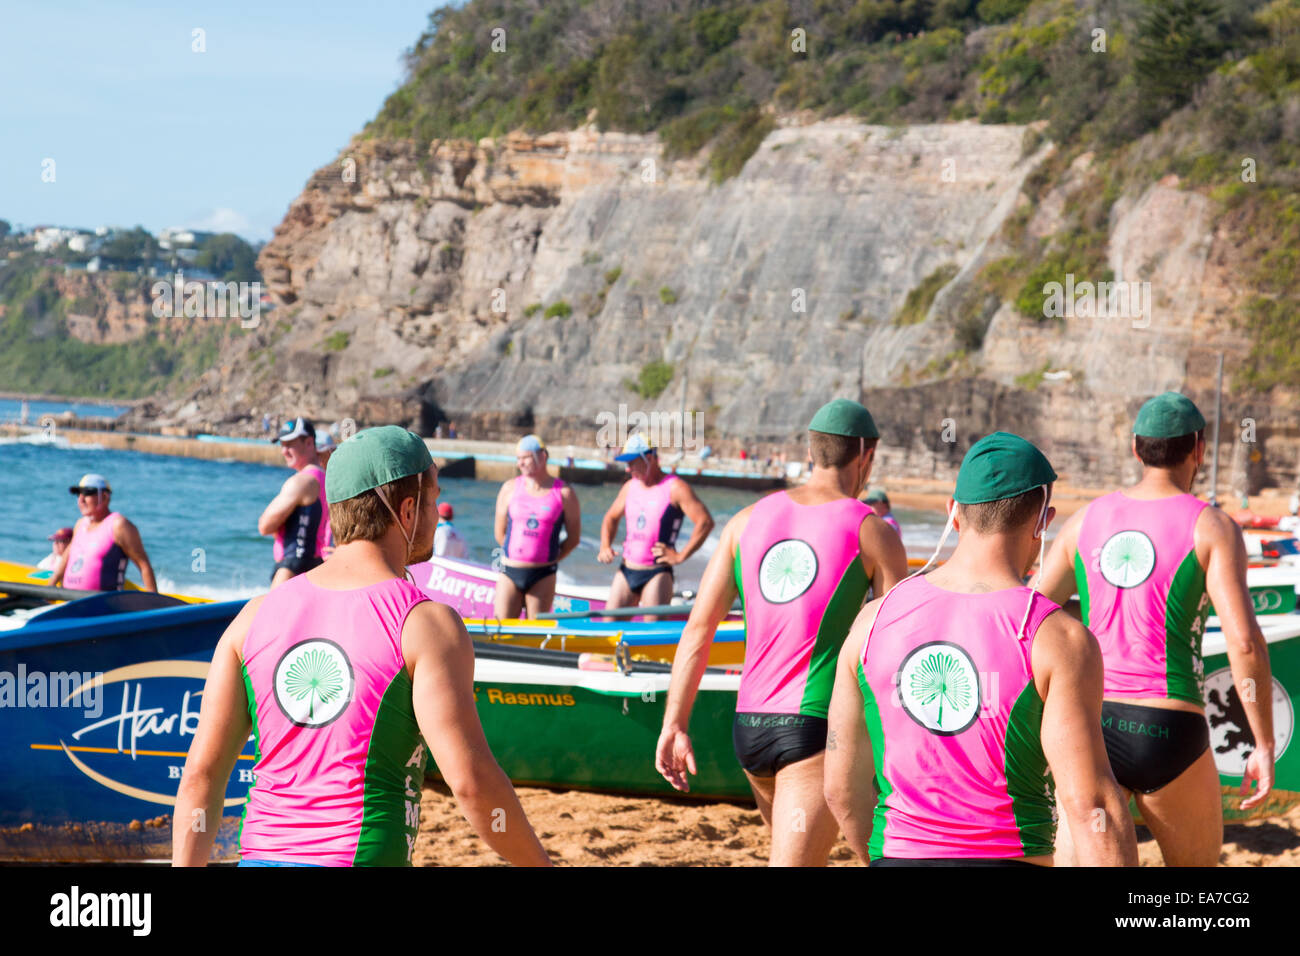 Sydney, Australia. 8th Nov, 2014. Summer surfboat racing competition amongst surfclubs located on Sydney's northern - Stock Image